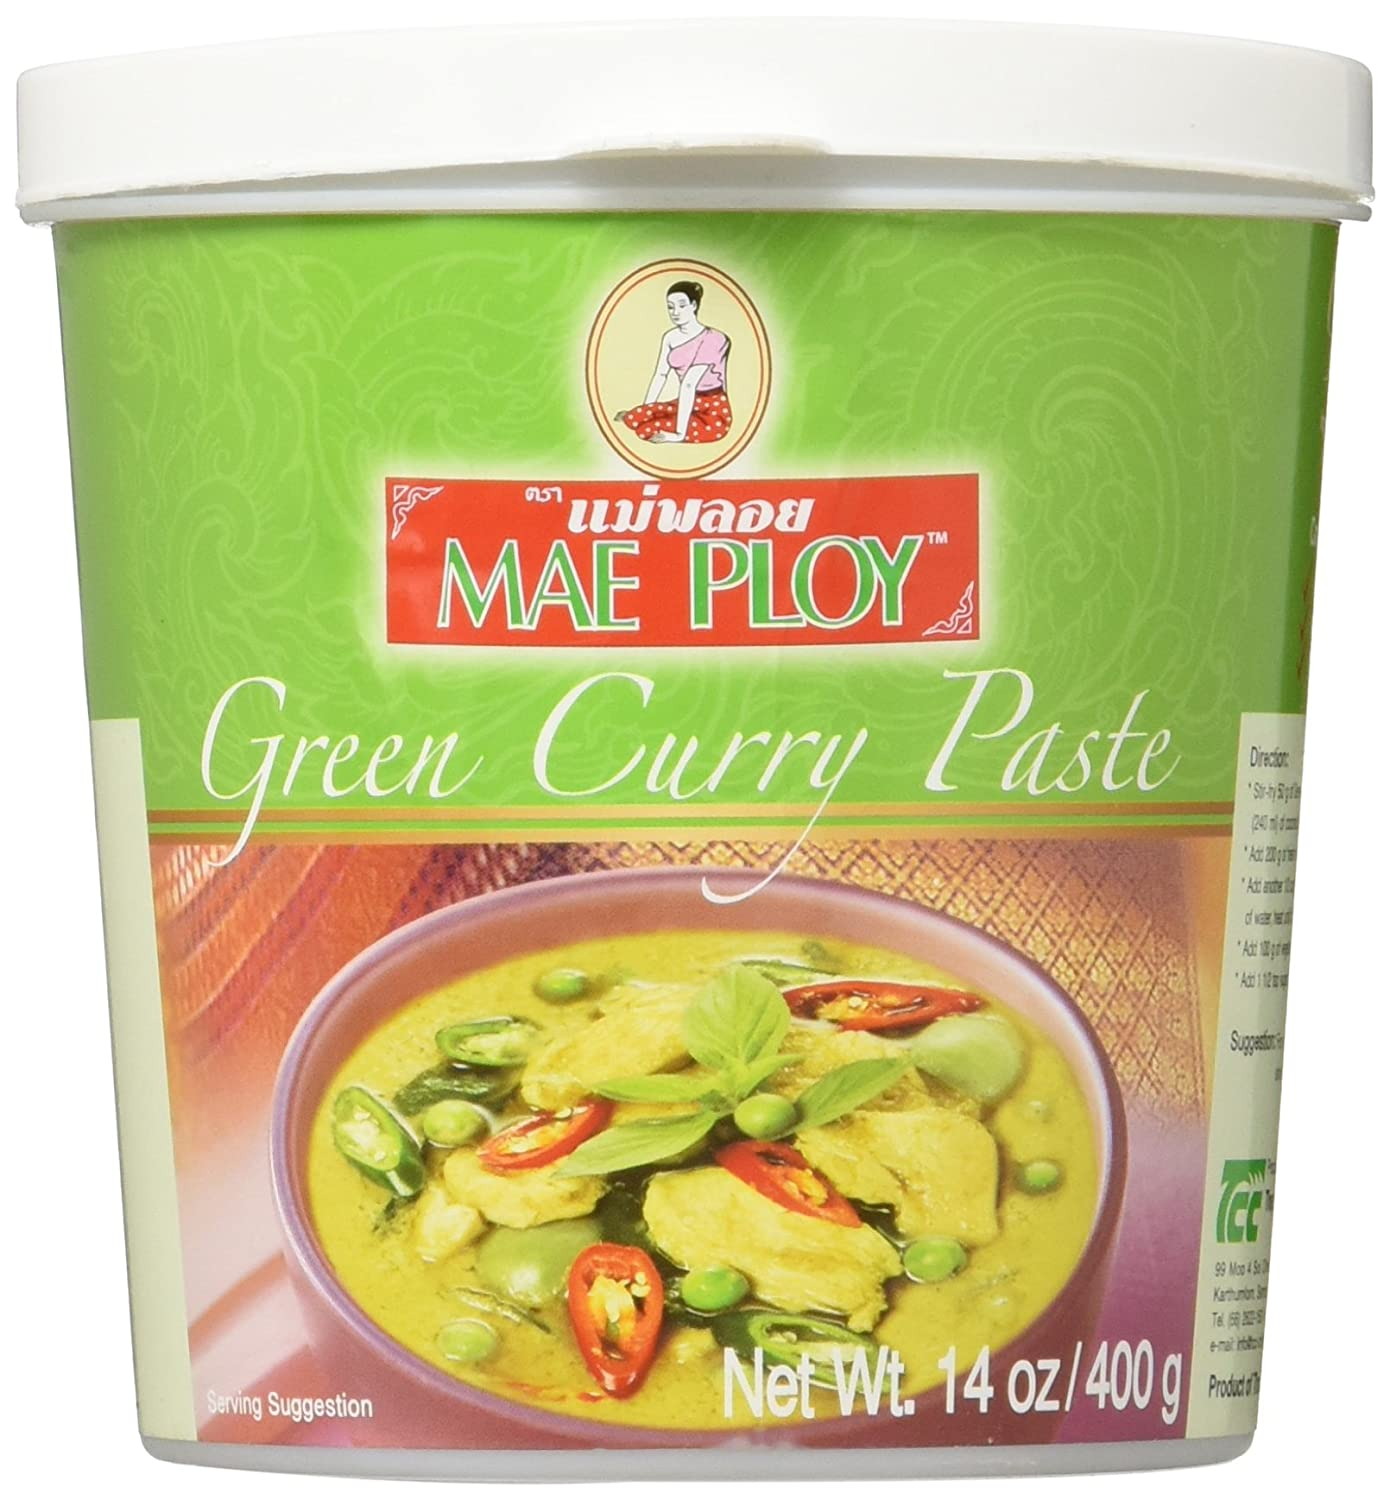 Amazon.com : Mae Ploy Green Curry Paste, 14 oz : Grocery & Gourmet Food